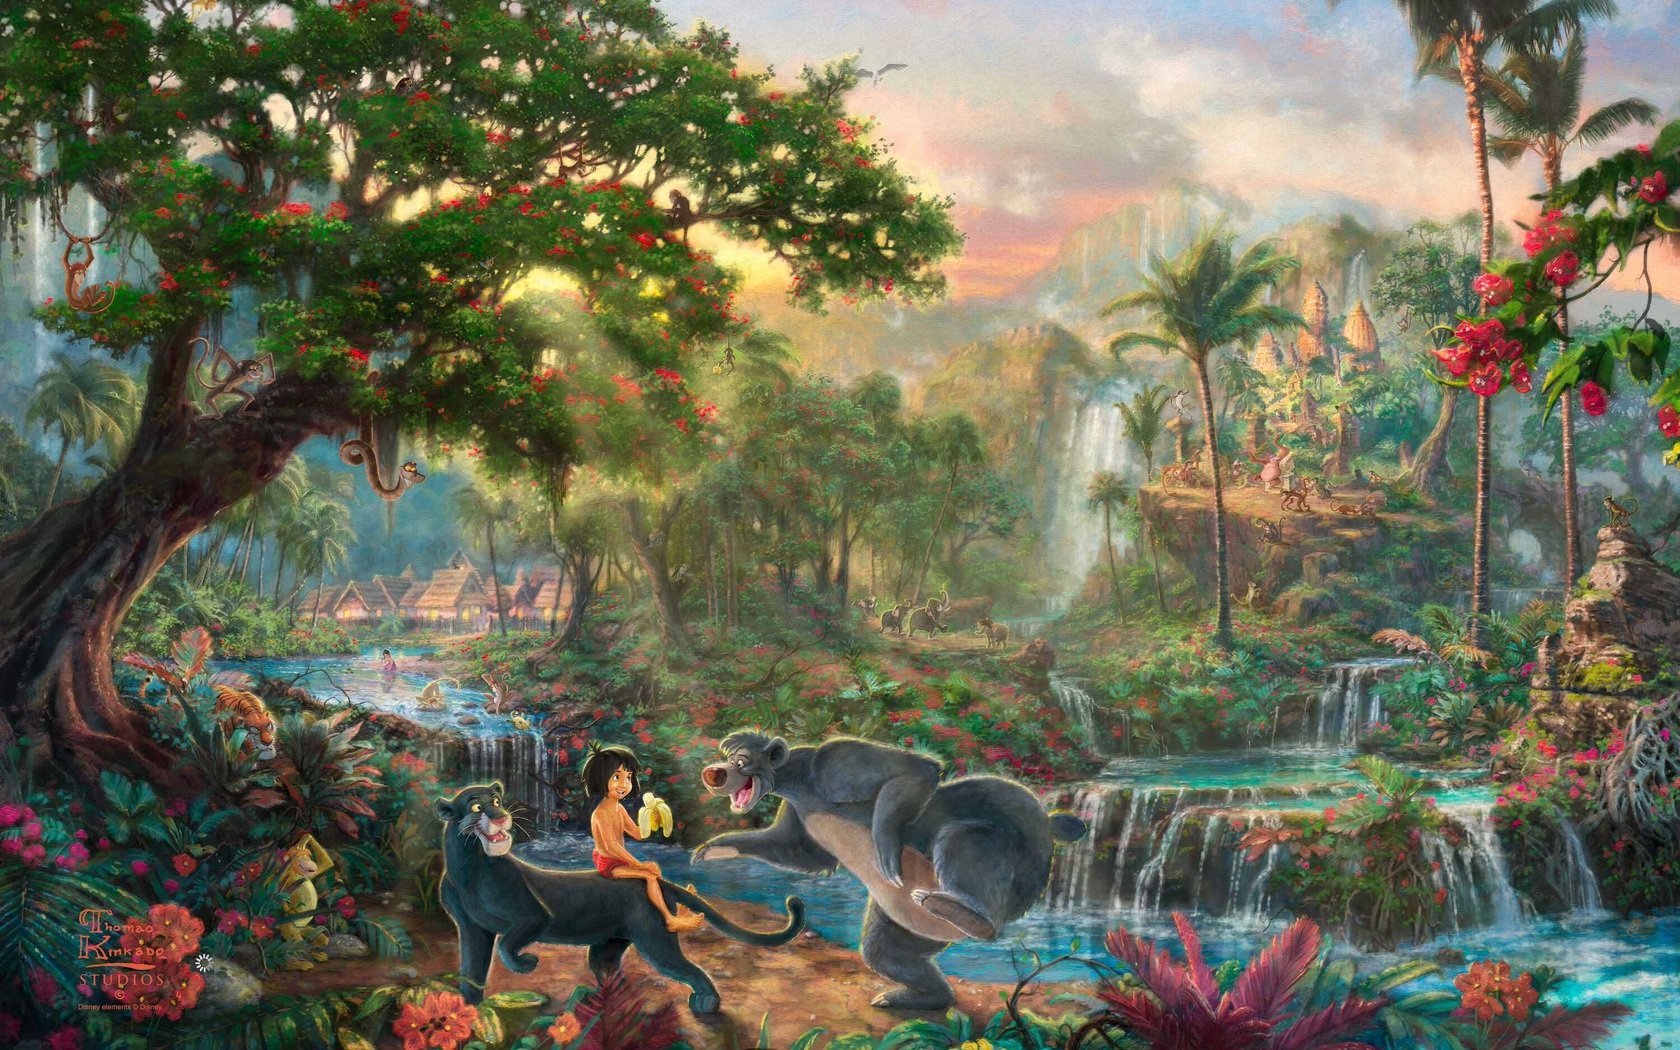 The Jungle Book Amazing High Quality Wallpapers - All HD Wallpapers